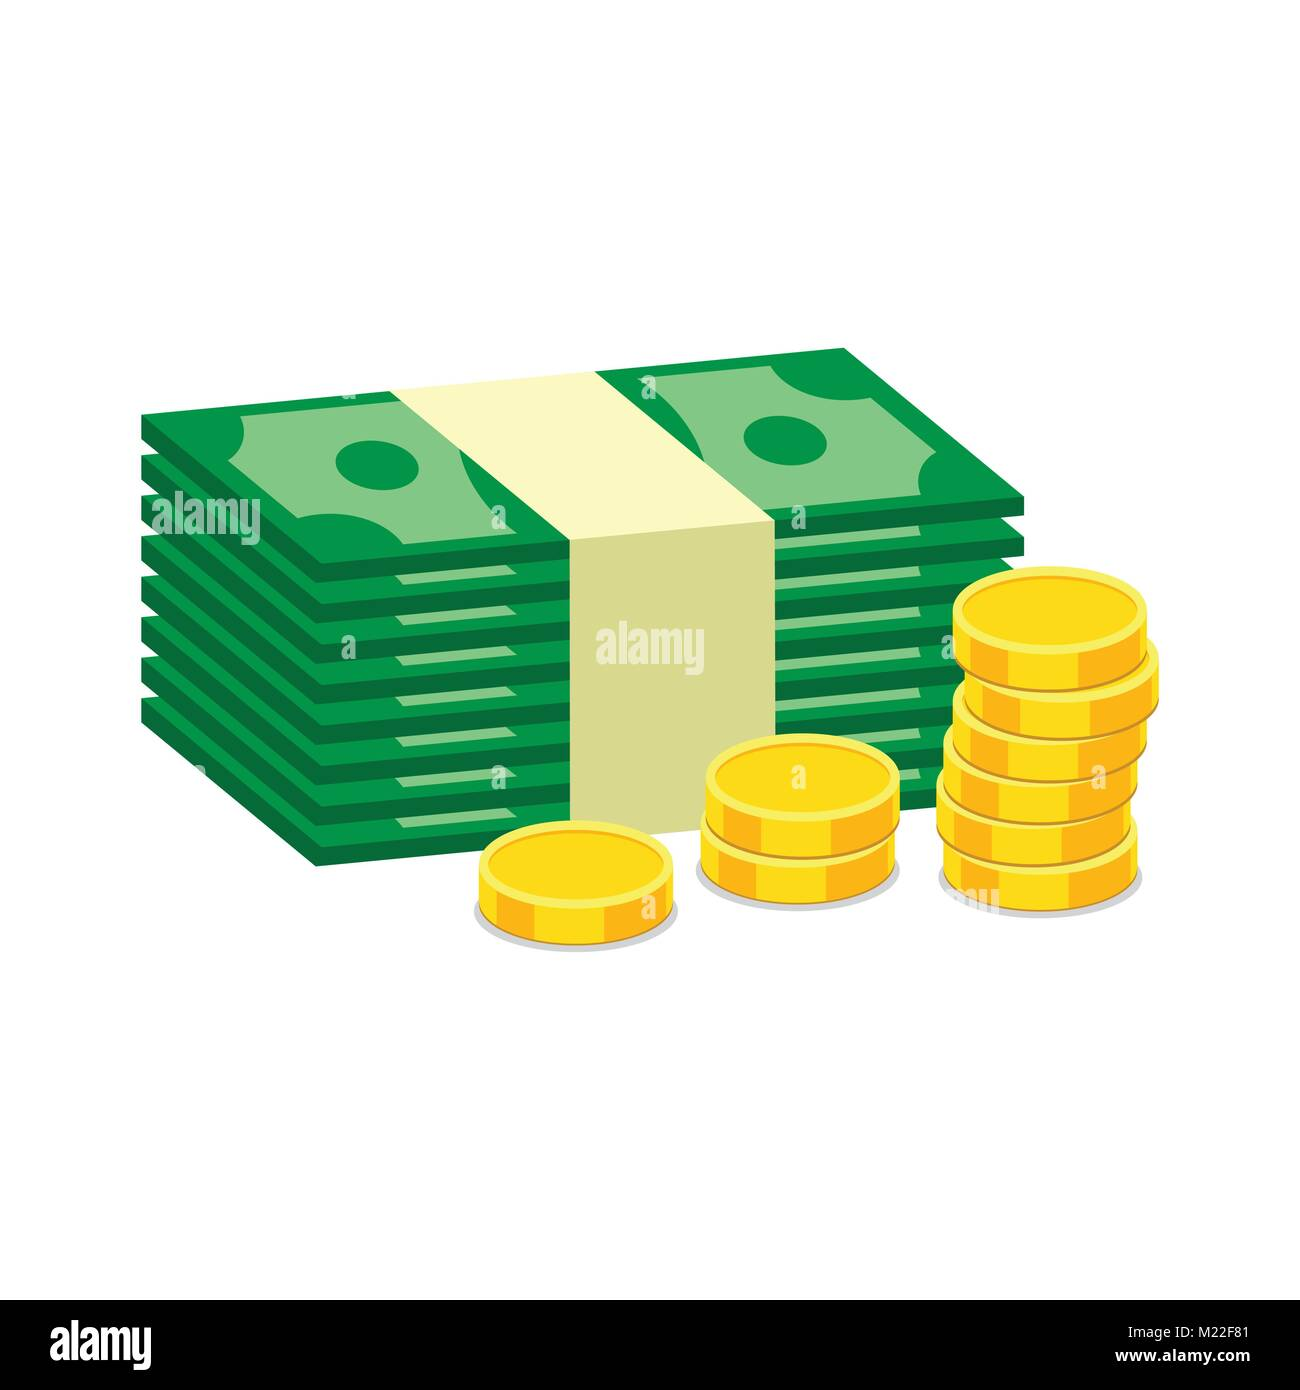 cb40ae6c4e54 Stacks of gold coins and dollar cash. Vector illustration in flat design on  white background